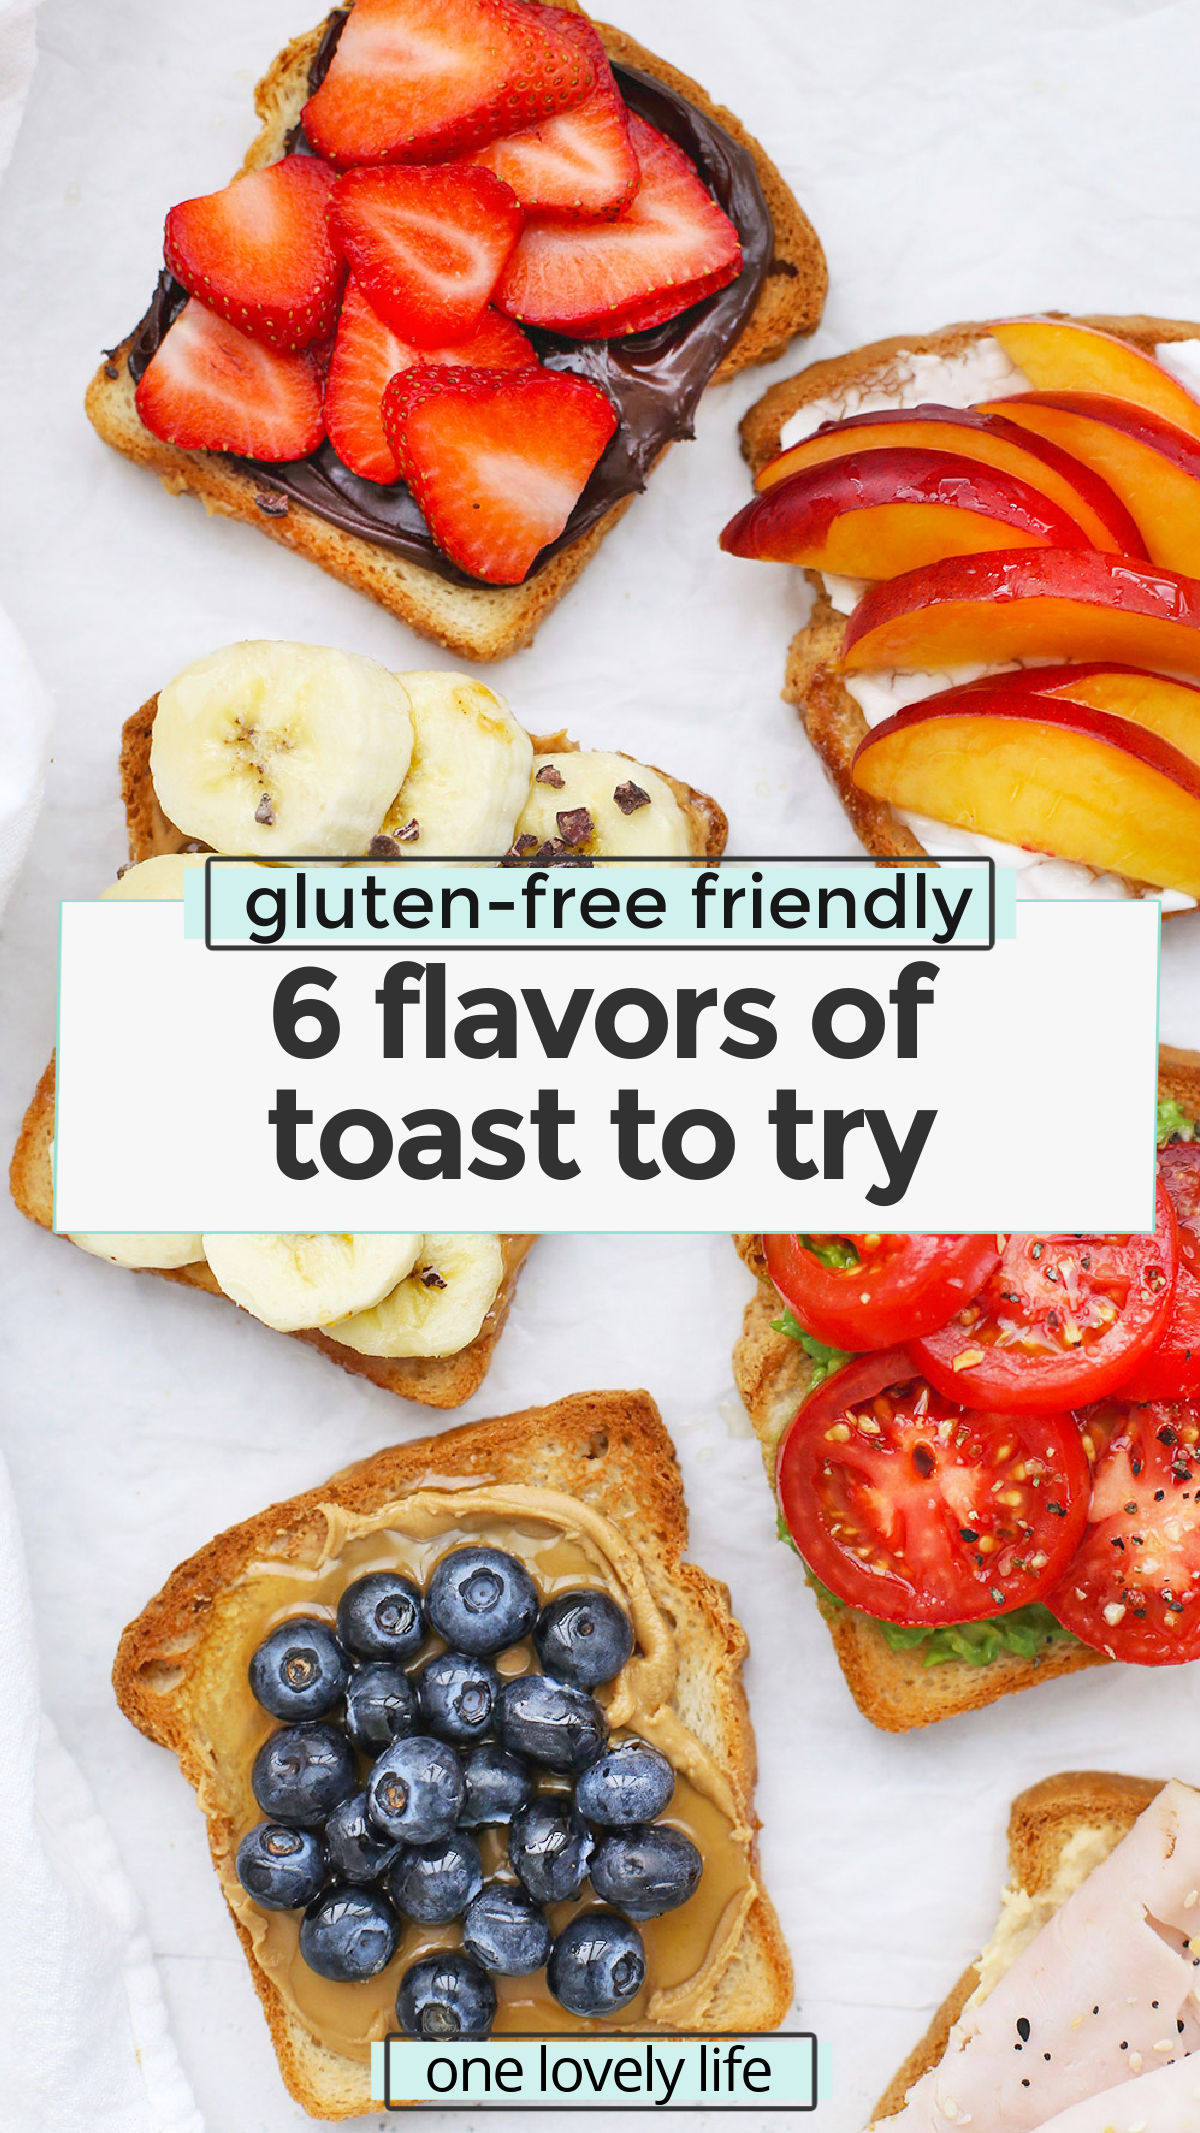 Yummy Toast Flavors to Try - These tasty toast ideas are the perfect way to get creative at breakfast, lunch, or snack. Choose from our lists of topping ideas or try one of our 6 favorite combinations. (Gluten-Free + Vegan Options) // Gluten-Free Toast // Creative Toast Ideas // Breakfast // brunch // hummus toast // avocado toast #toast #breakfast #brunch #snack